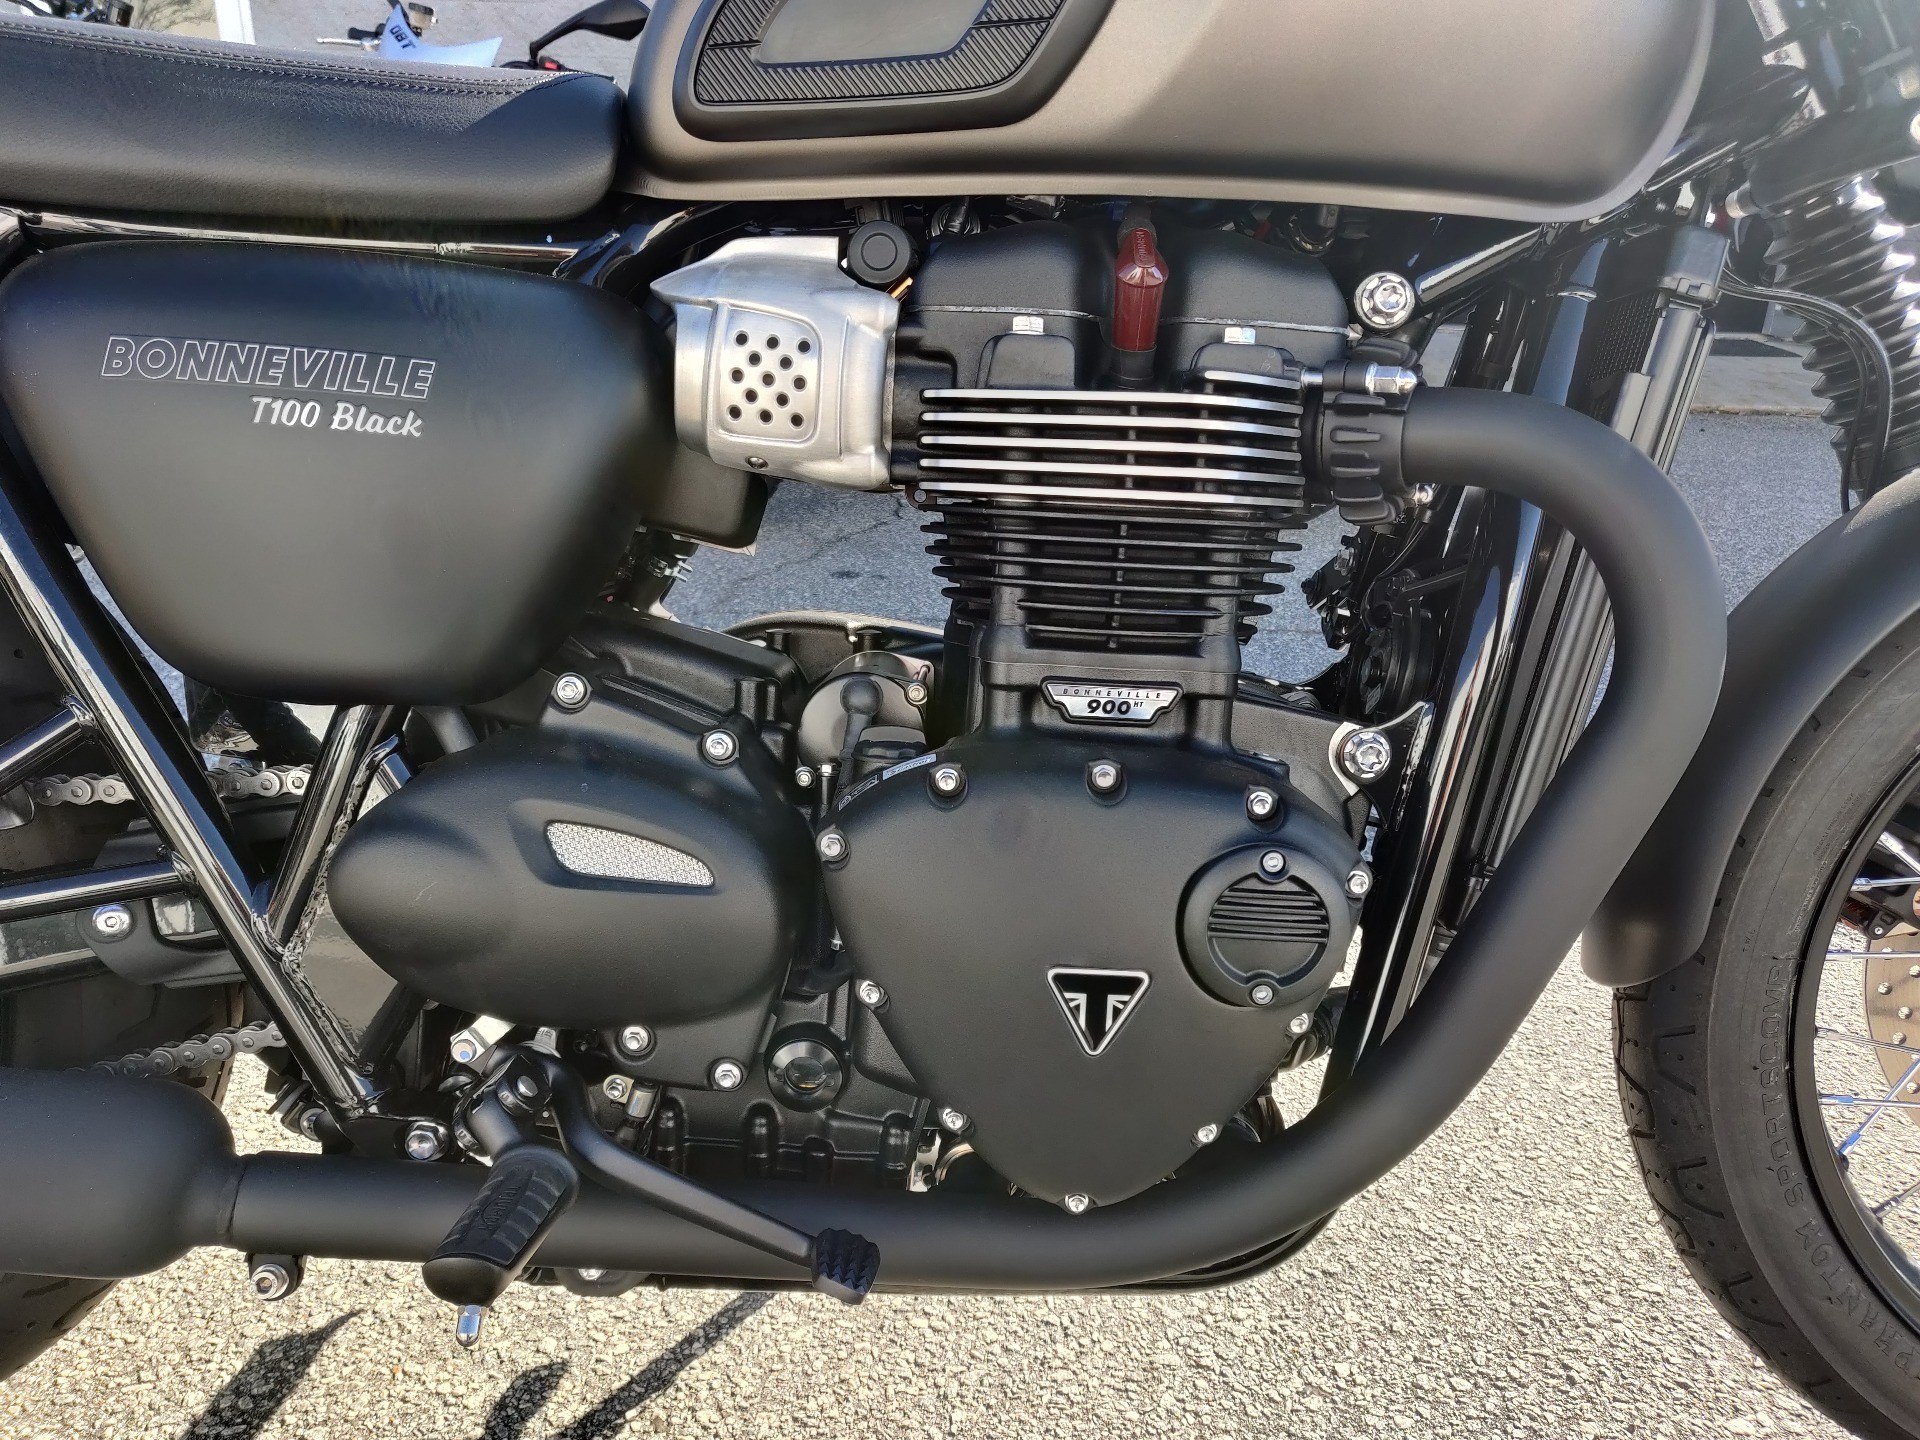 2020 Triumph Bonneville T100 Black in Greenville, South Carolina - Photo 13